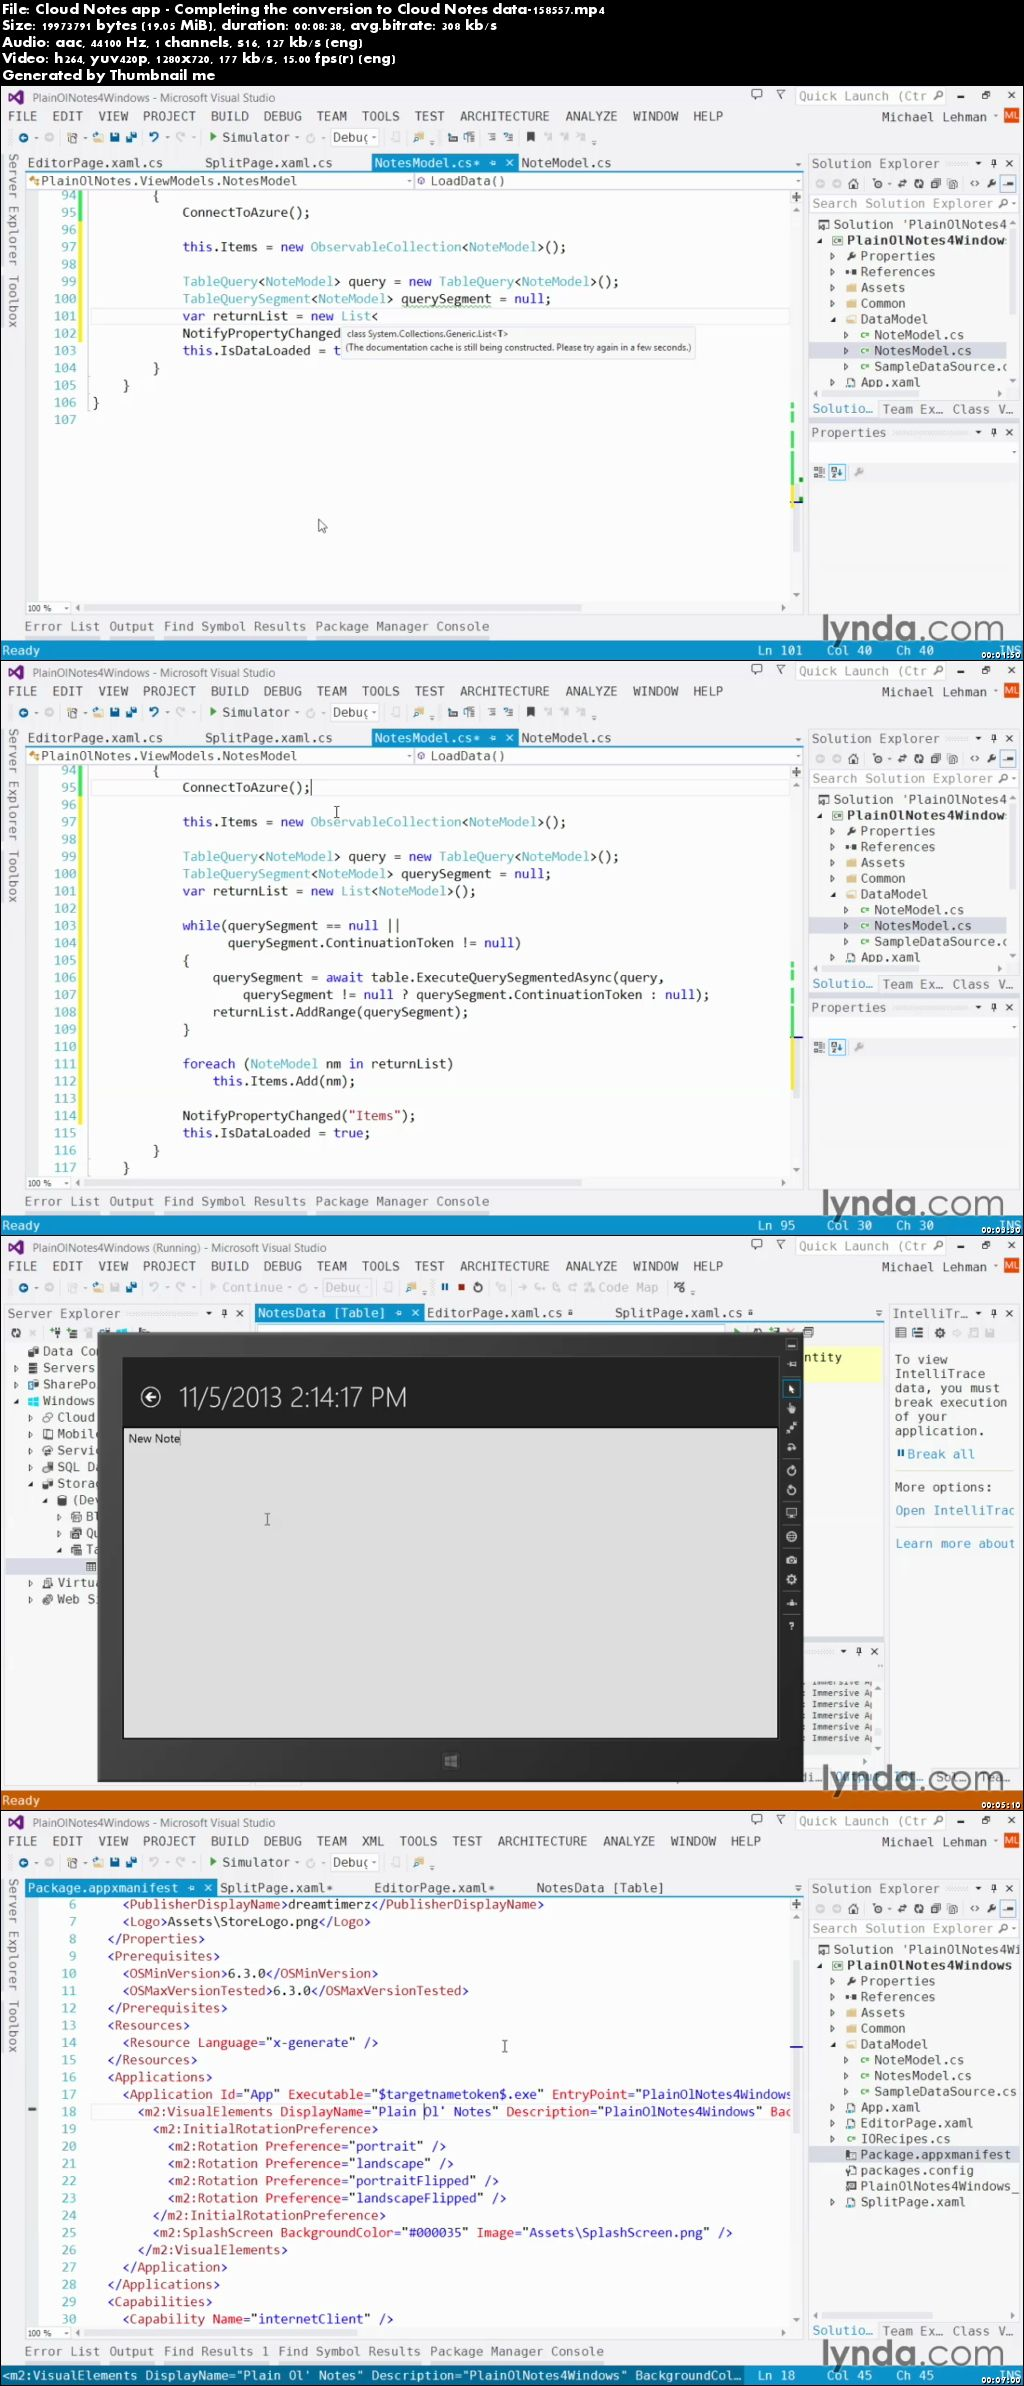 Lynda - Using Windows Azure with Windows Store Apps (repost)